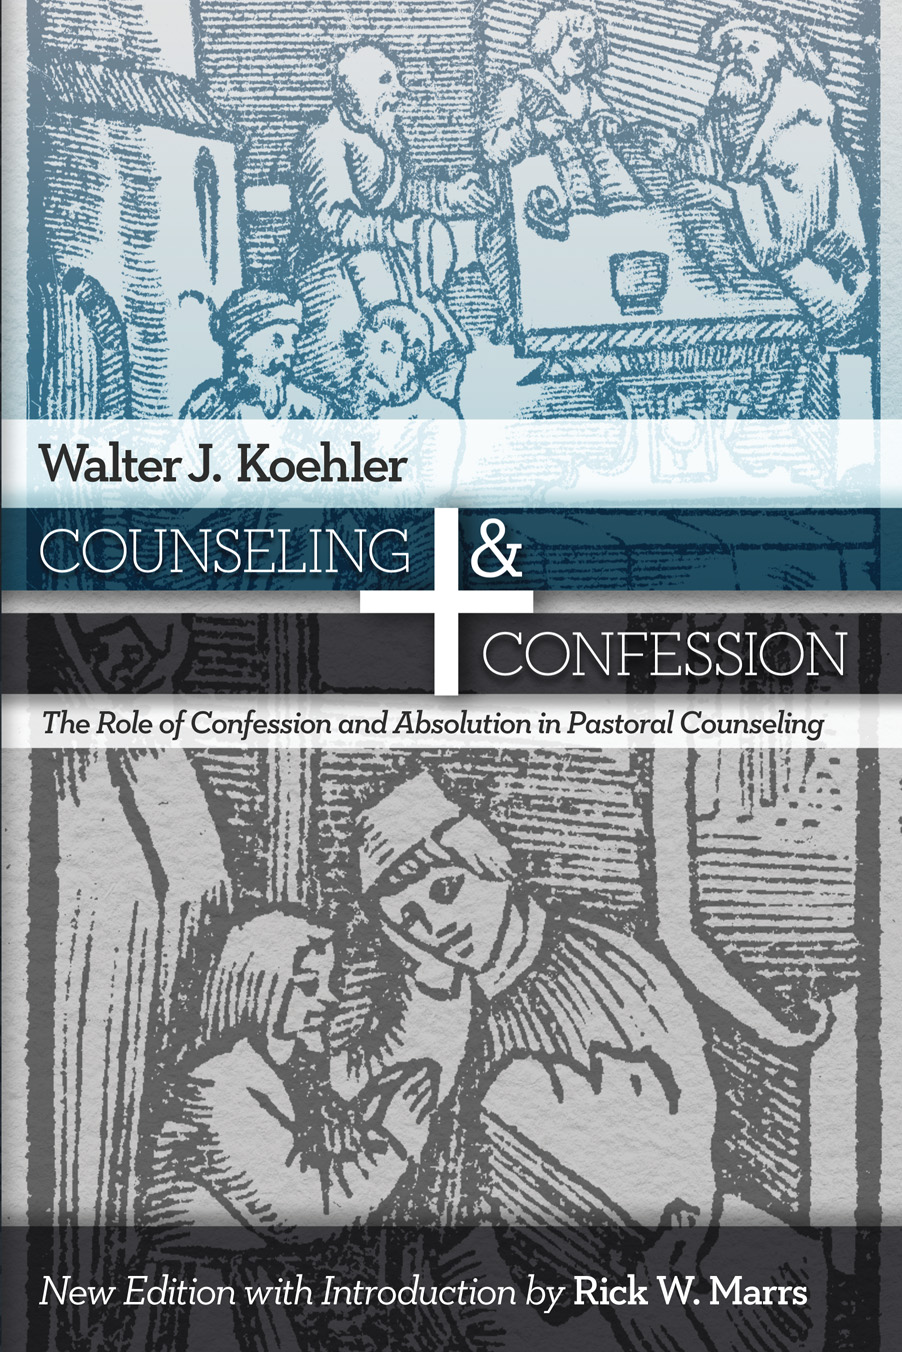 Walter Koehler's classic is back: read the new foreword